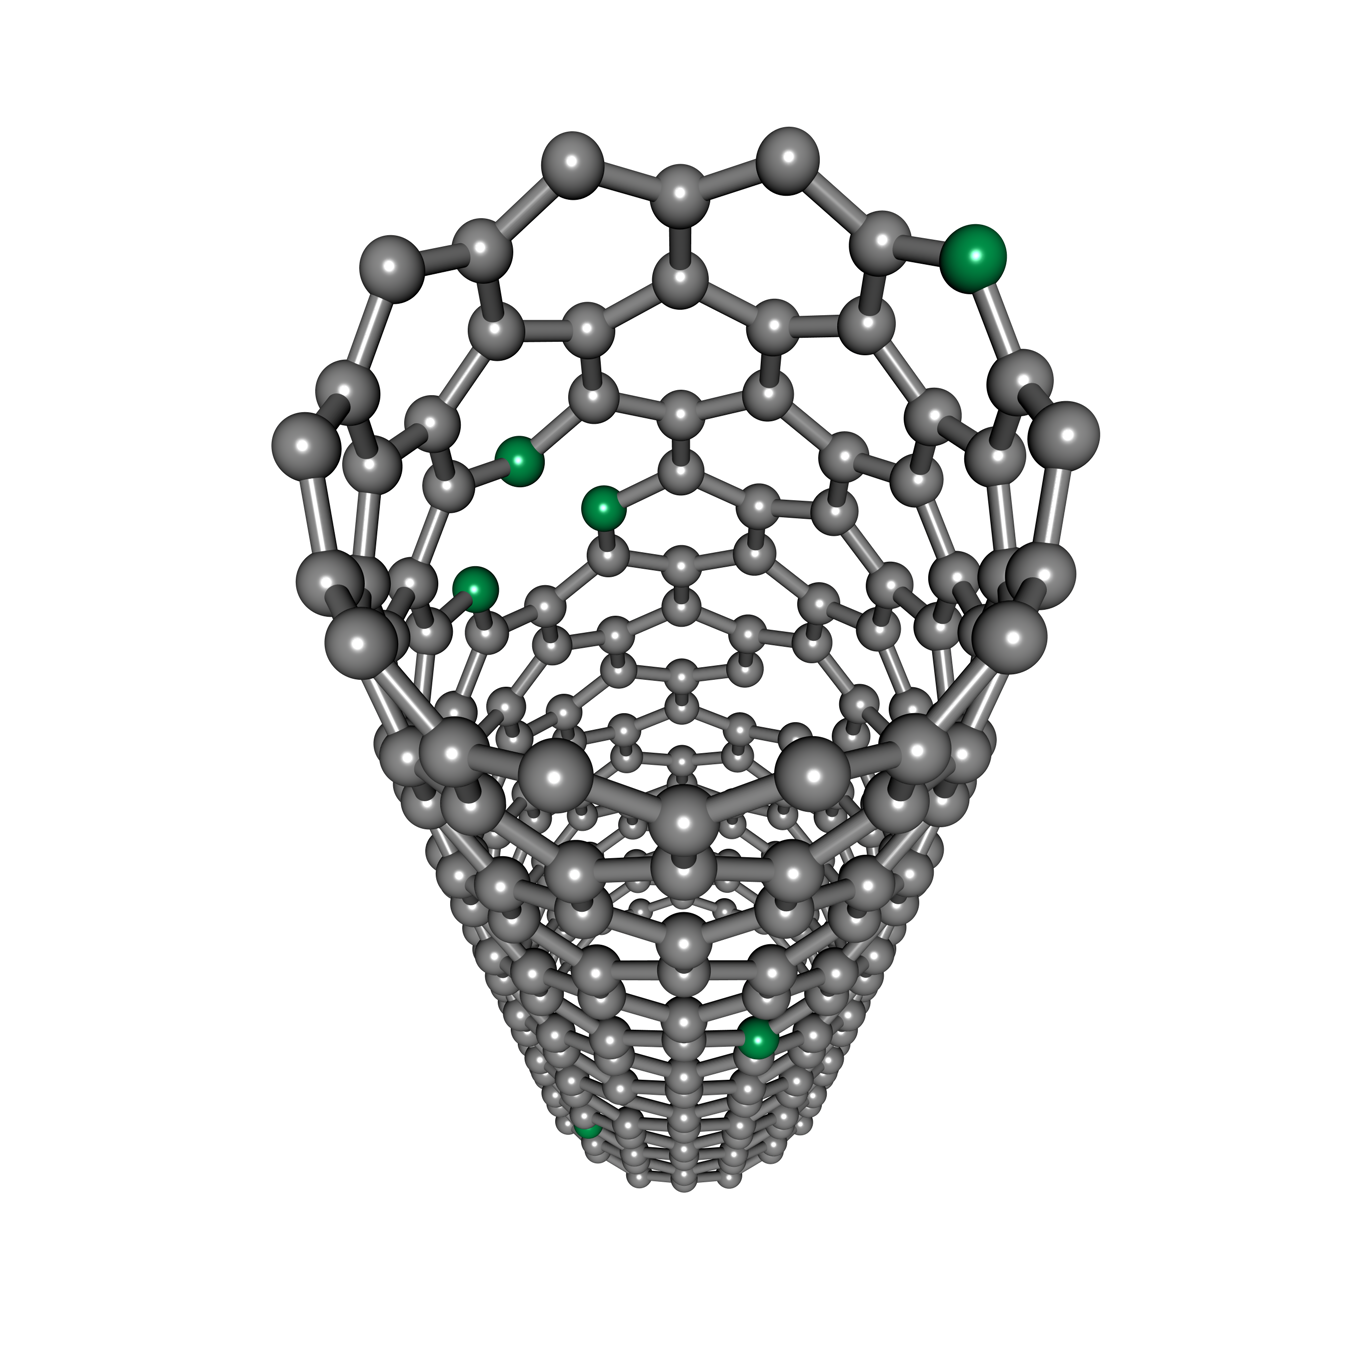 An atomistic model of a single-walled carbon nanotube doped with nitrogen heteroatoms (shown in green). Depending on their covalent radius and valence electronic structure, the dopants can bond in different configurations. These can have quite different effects on the properties of the host material, making the identification of bonding one of the crucial research questions.